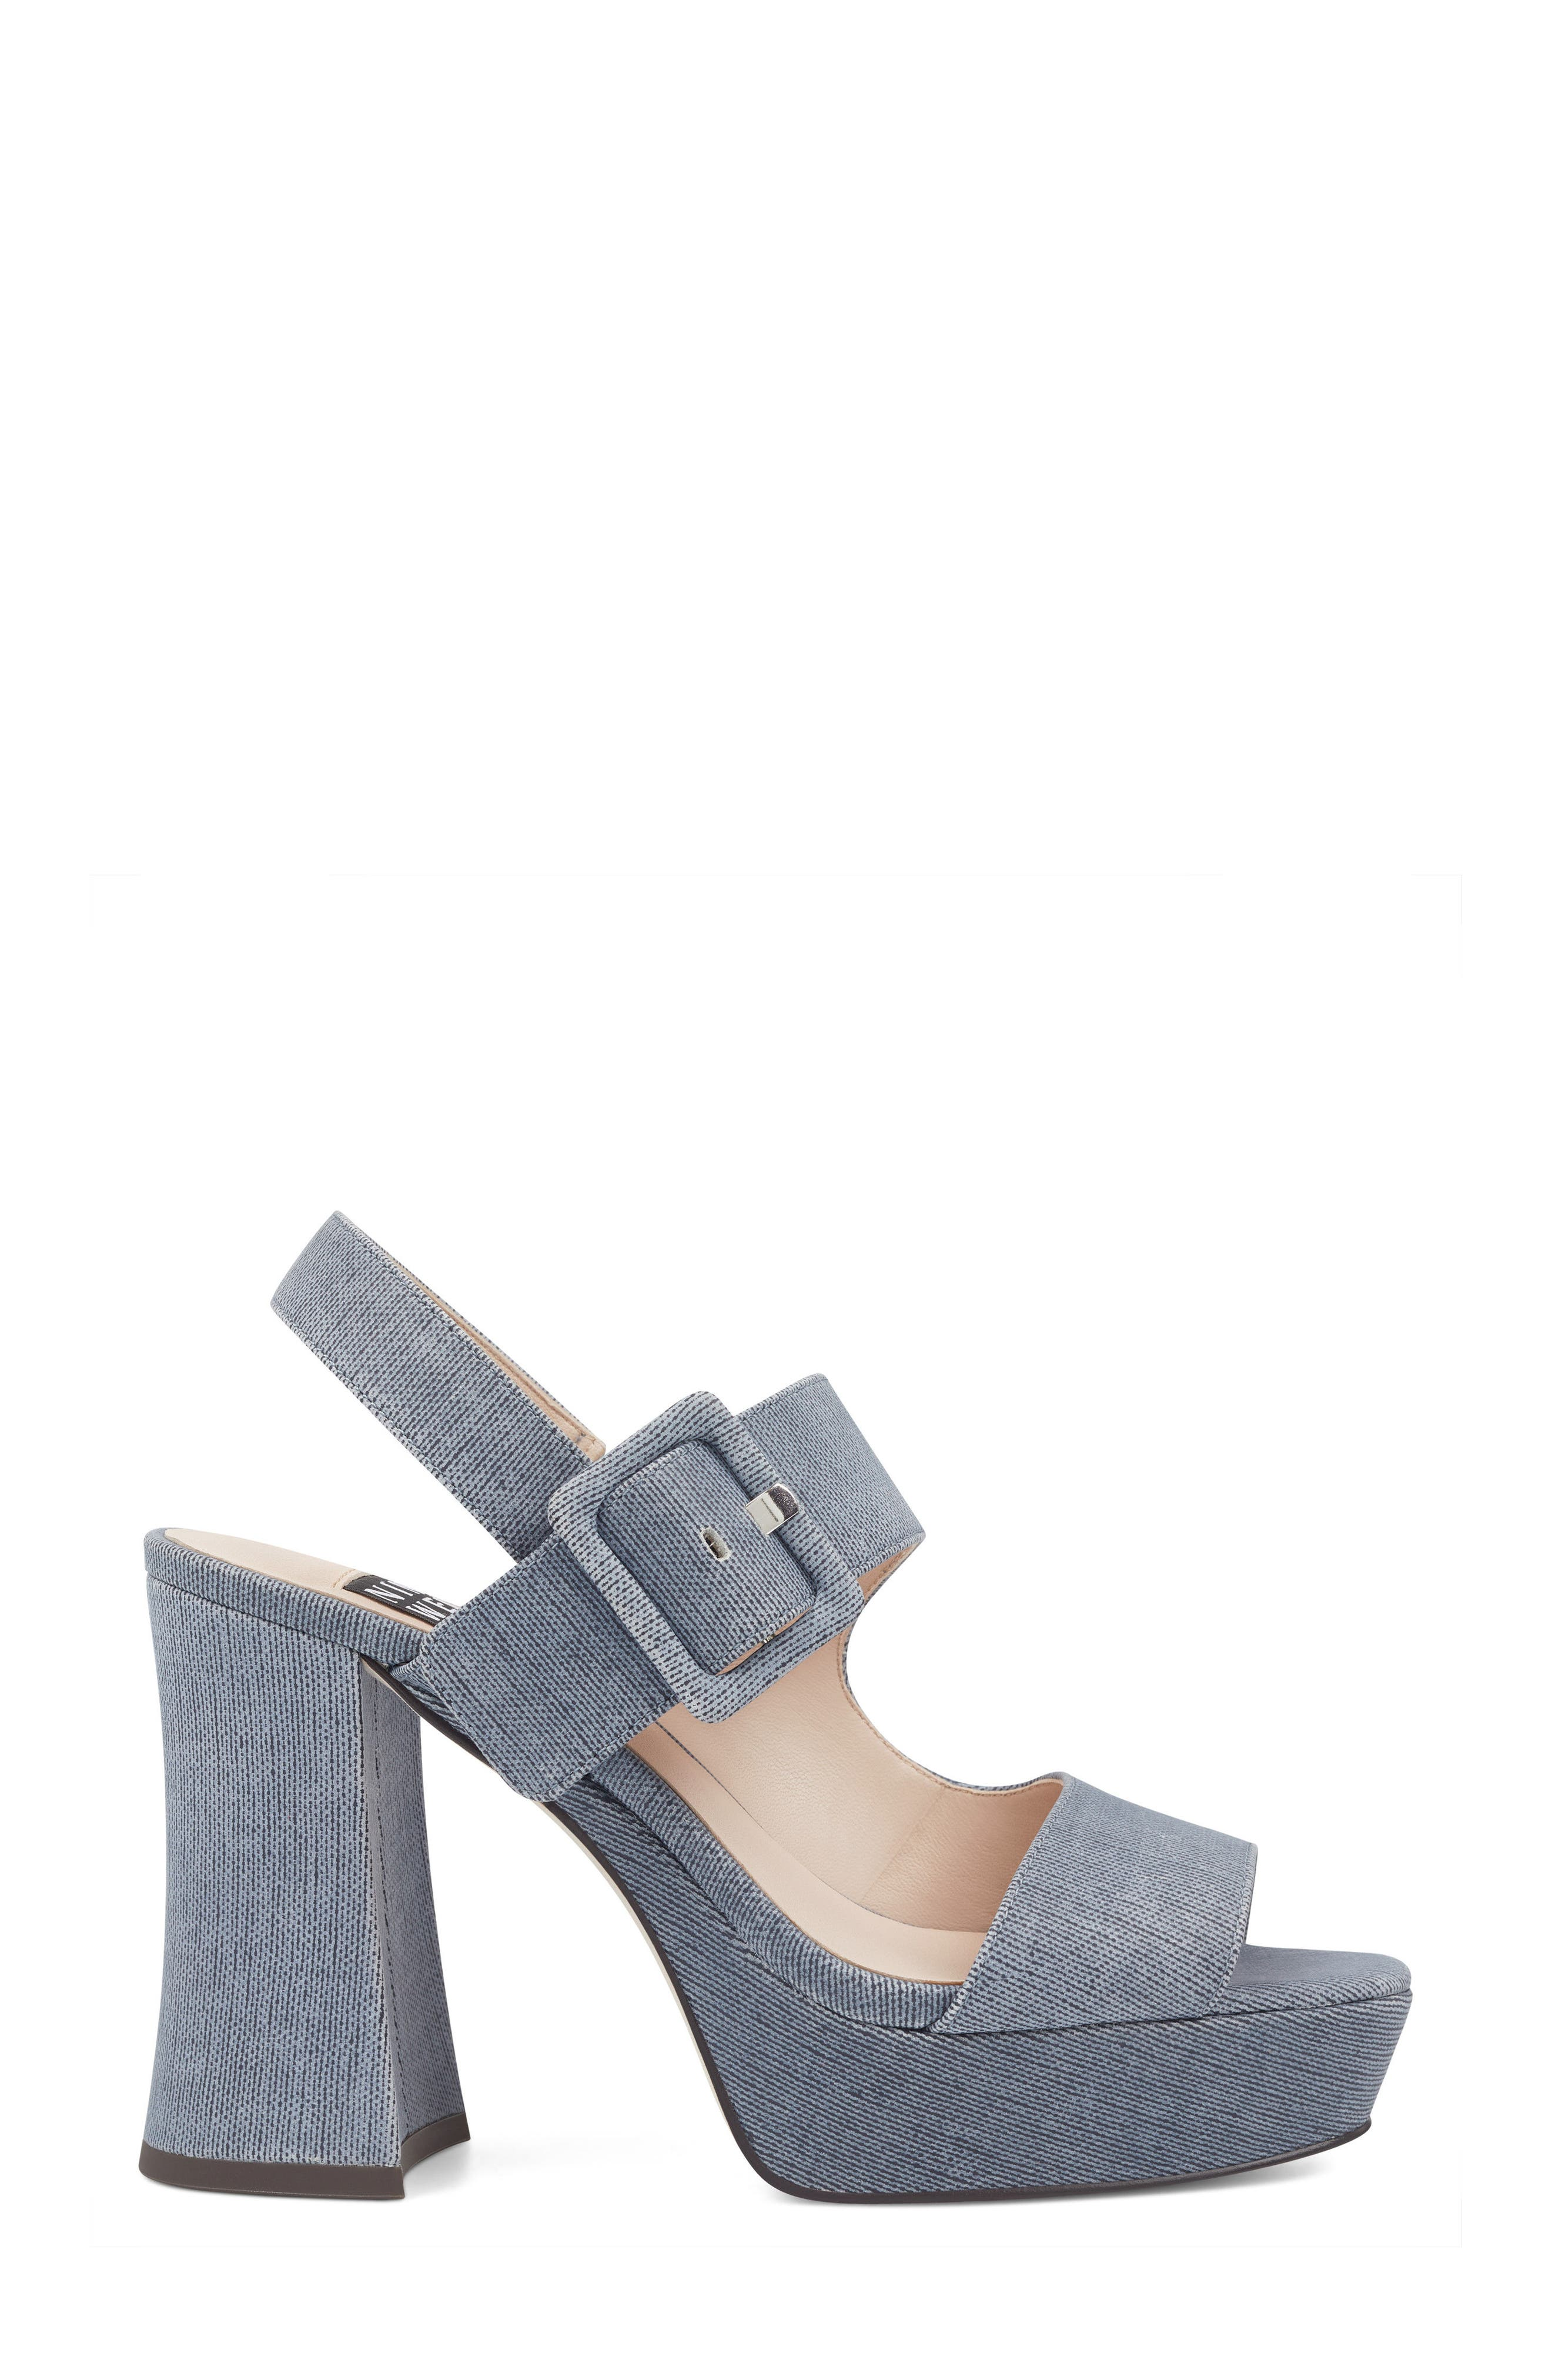 Lexine - 40th Anniversary Capsule Collection Platform Sandal,                             Alternate thumbnail 3, color,                             DARK BLUE FABRIC